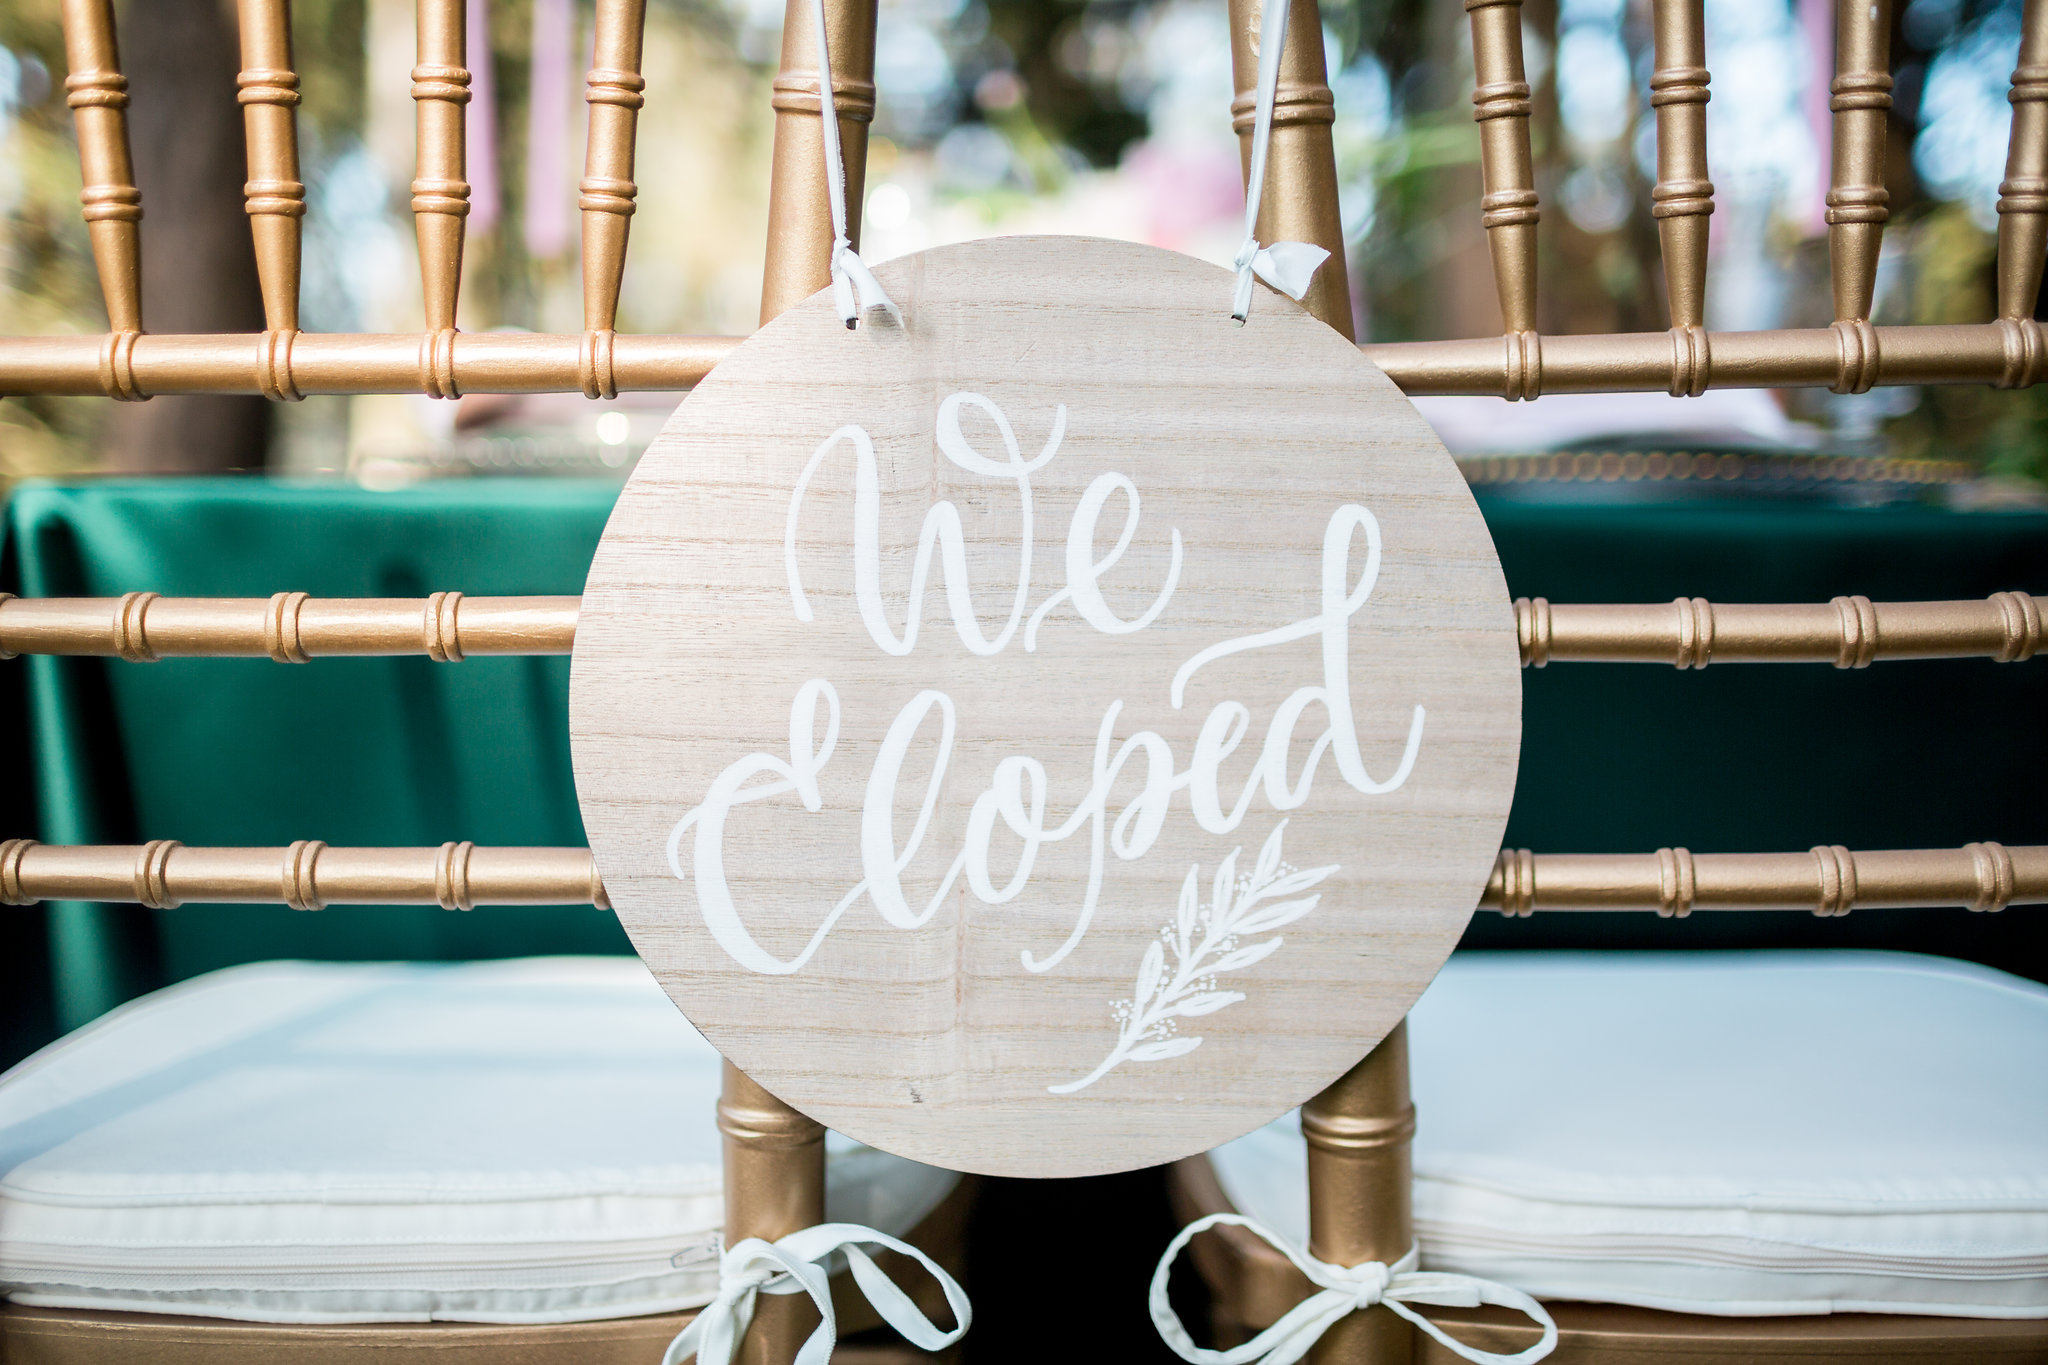 Elopement Announcement Esmerald and Gold Inspired by Paperloveme Calligraphy51.jpg